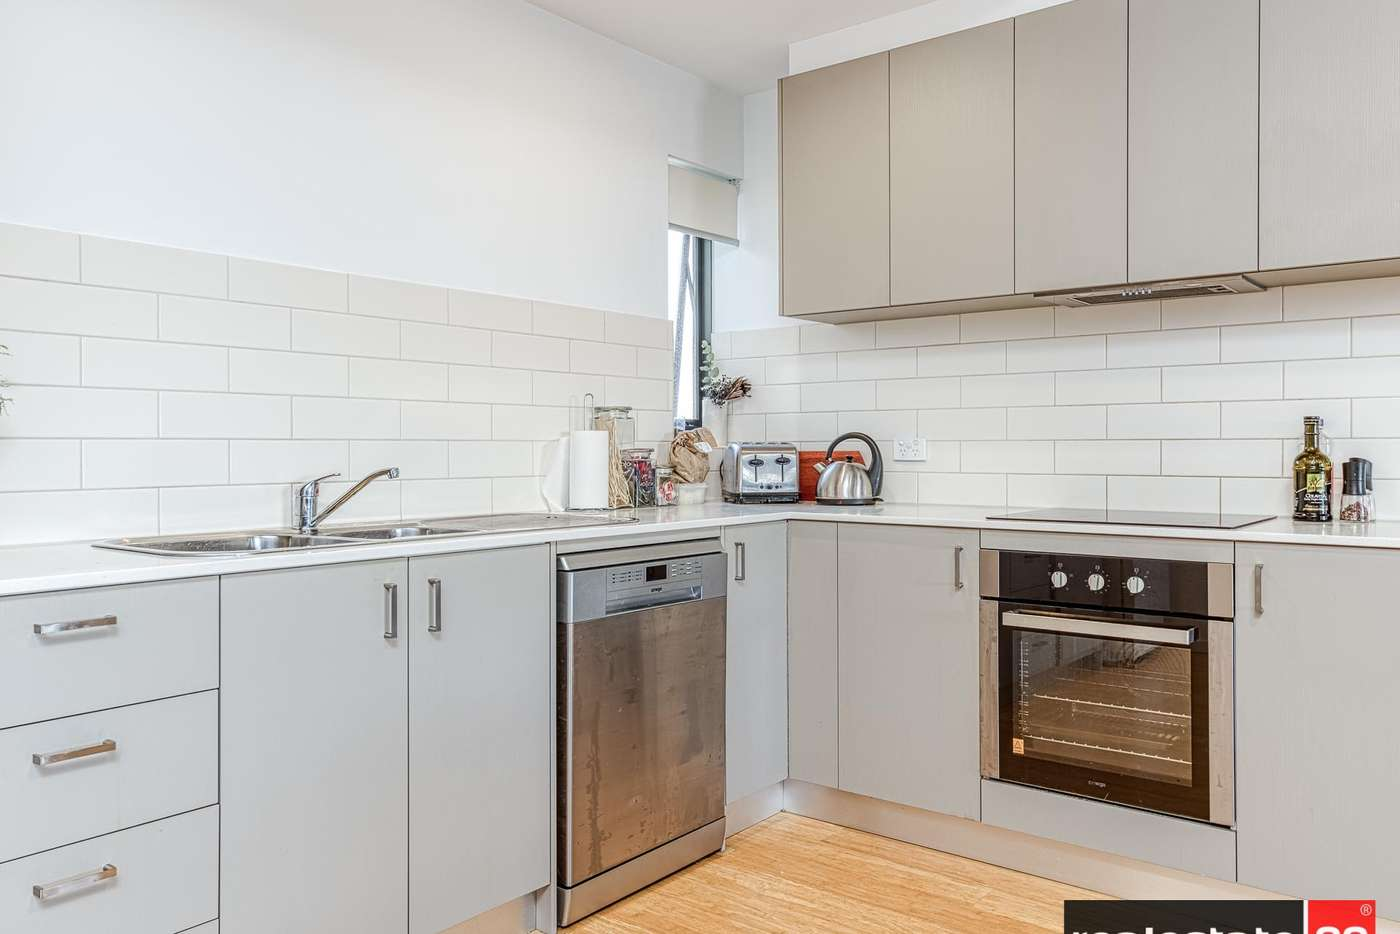 Sixth view of Homely apartment listing, 12/71 Brewer Street, Perth WA 6000